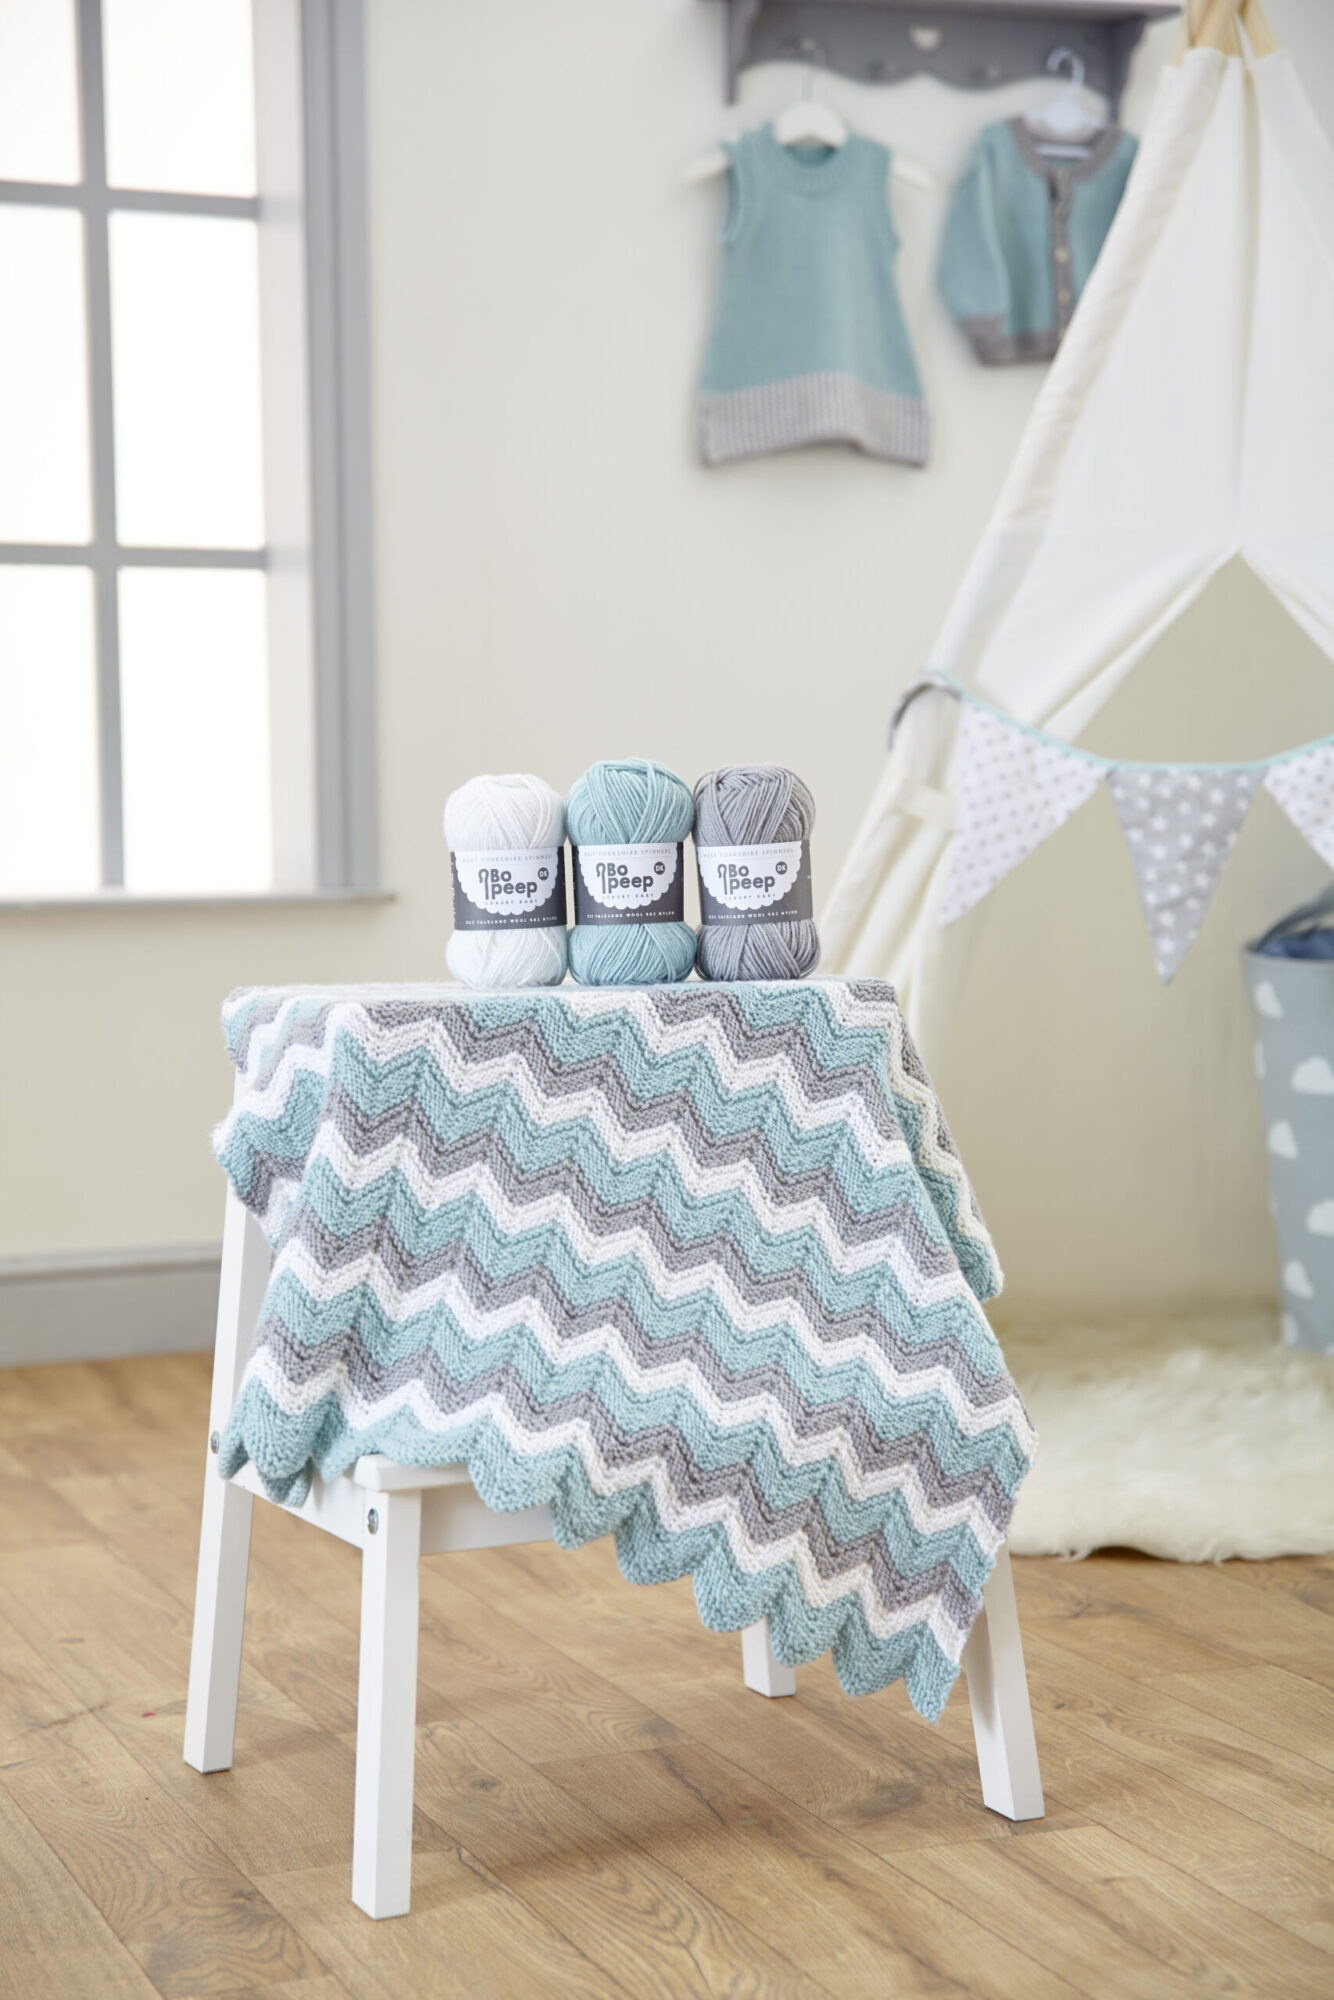 West Yorkshire Spinners Bo Peep DK – Knitted Zig Zag Baby Blanket Pattern product image